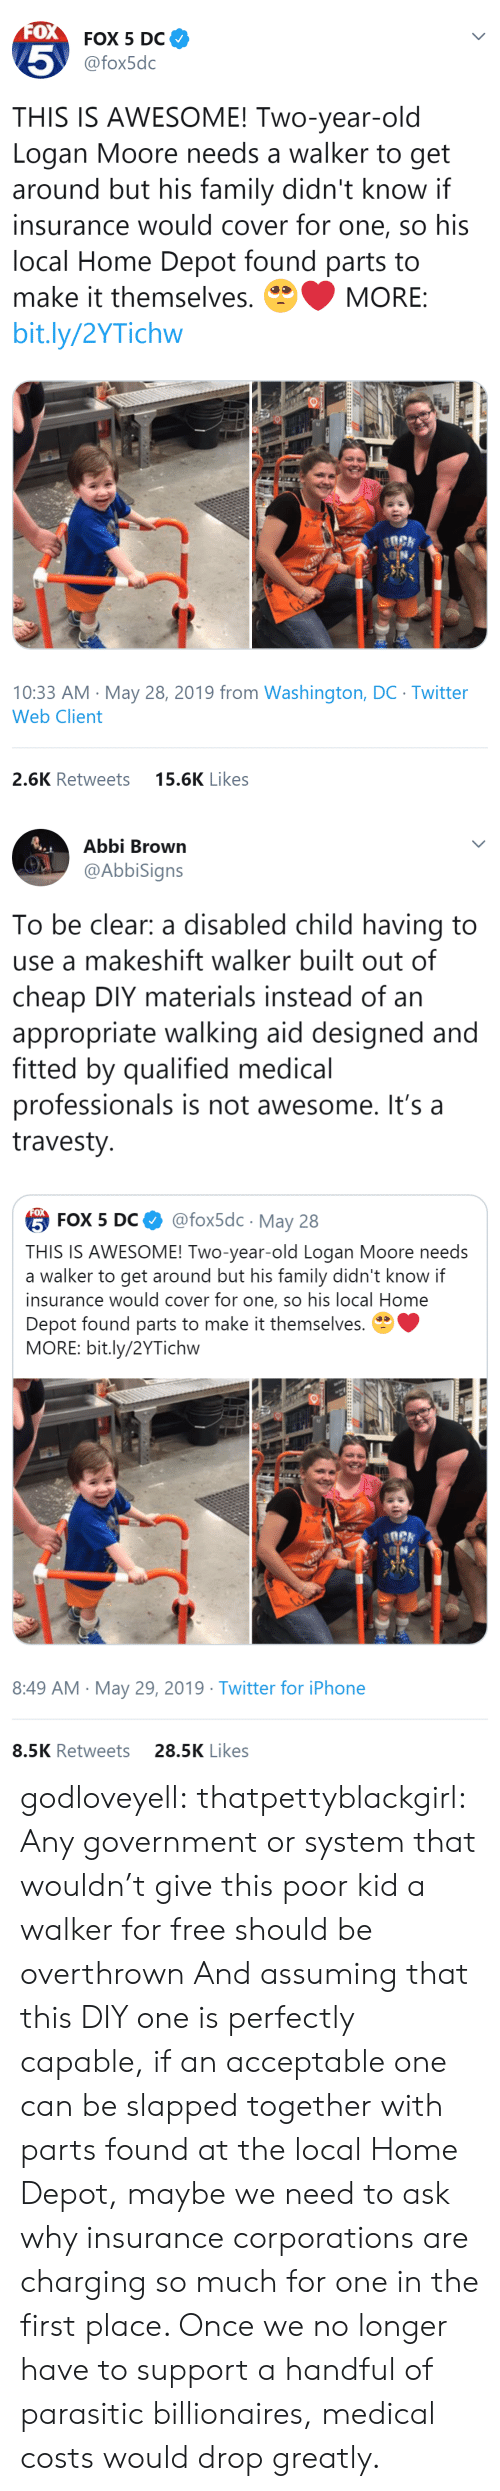 Family, Iphone, and Tumblr: FOX  FOX 5 DC  5  @fox5dc  THIS IS AWESOME! Two-year-old  Logan Moore needs a walker to get  around but his family didn't know if  insurance would cover for one, so his  local Home Depot found parts to  make it themselves.  MORE:  bit.ly/2YTichw  10:33 AM May 28, 2019 from Washington, DC Twitter  Web Client  15.6K Likes  2.6K Retweets   Abbi Brown  @AbbiSigns  To be clear: a disabled child having to  use a makeshift walker built out of  cheap DIY materials instead of an  appropriate walking aid designed and  fitted by qualified medical  professionals is not awesome. It's a  travesty  FOX  @fox5dc May 28  5 FOX 5 DС  THIS IS AWESOME! Two-year-old Logan Moore needs  a walker to get around but his family didn't know if  insurance would cover for one, so his local Home  Depot found parts to make it themselves.  MORE: bit.ly/2YTichw  8:49 AM May 29, 2019 Twitter for iPhone  28.5K Likes  8.5K Retweets godloveyell:  thatpettyblackgirl:  Any government or system that wouldn't give this poor kid a walker for free should be overthrown   And assuming that this DIY one is perfectly capable, if an acceptable one can be slapped together with parts found at the local Home Depot, maybe we need to ask why insurance corporations are charging so much for one in the first place.  Once we no longer have to support a handful of parasitic billionaires, medical costs would drop greatly.